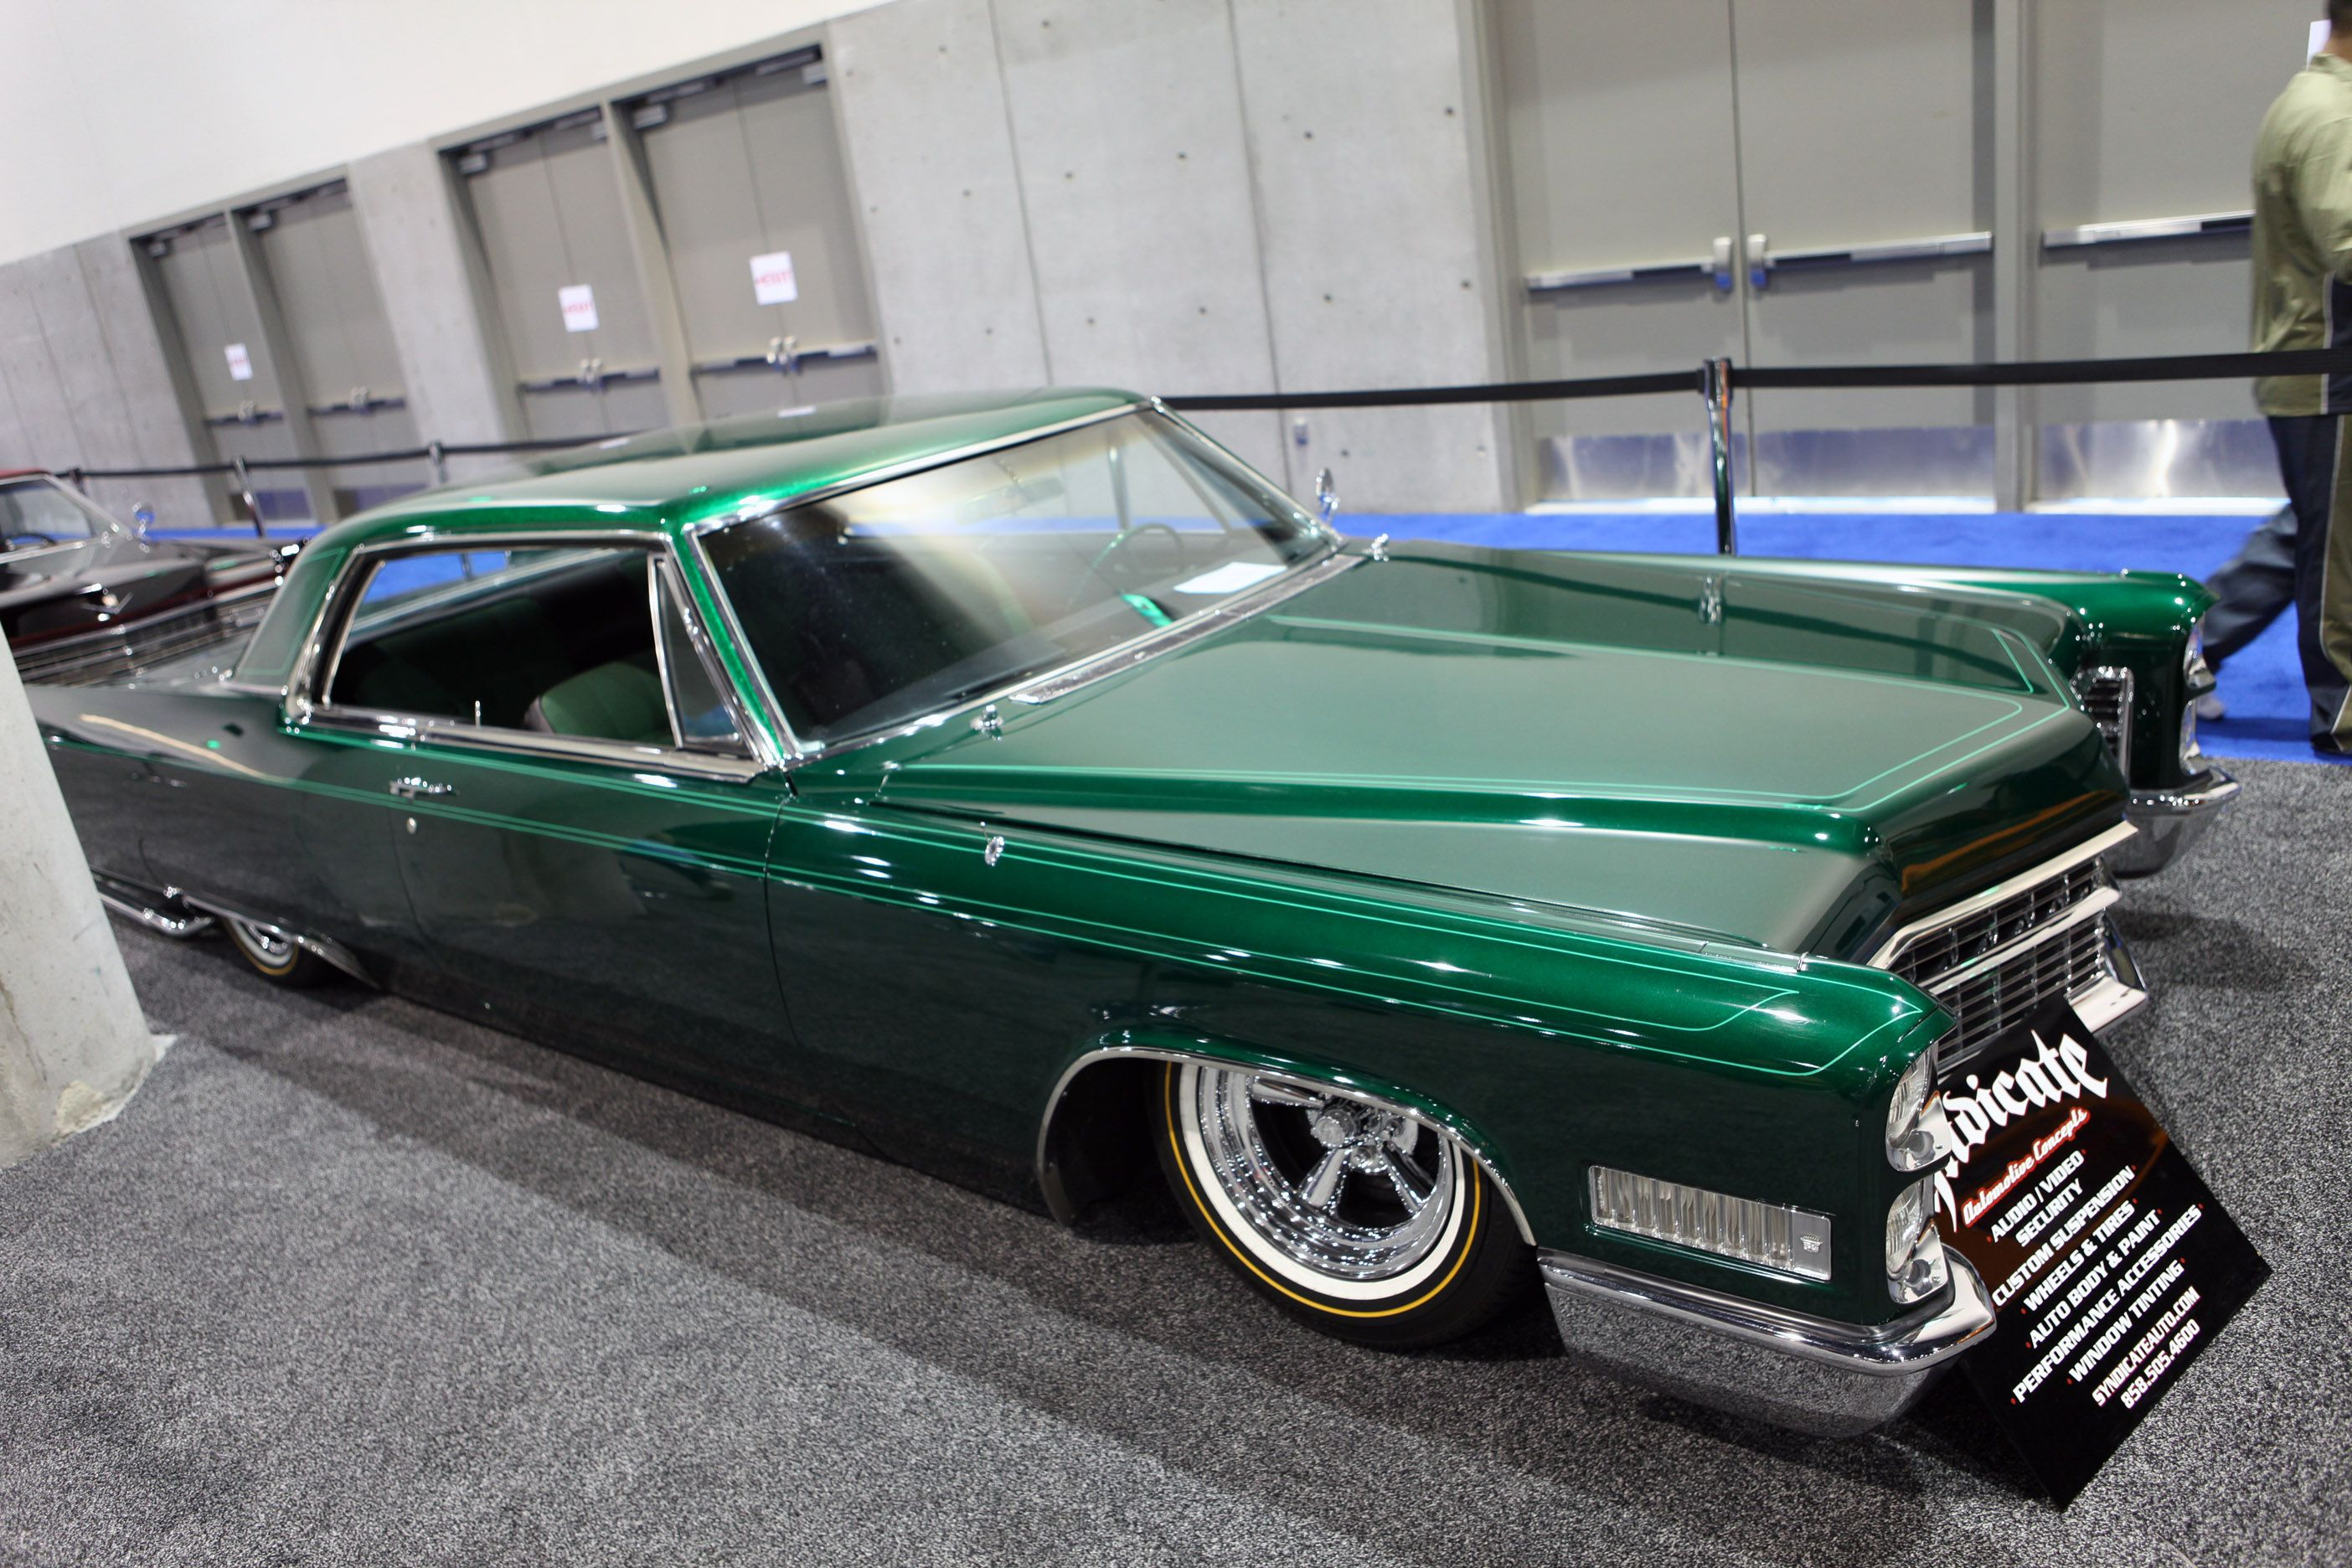 photos of old Autos hot rods for sale, classic cars for